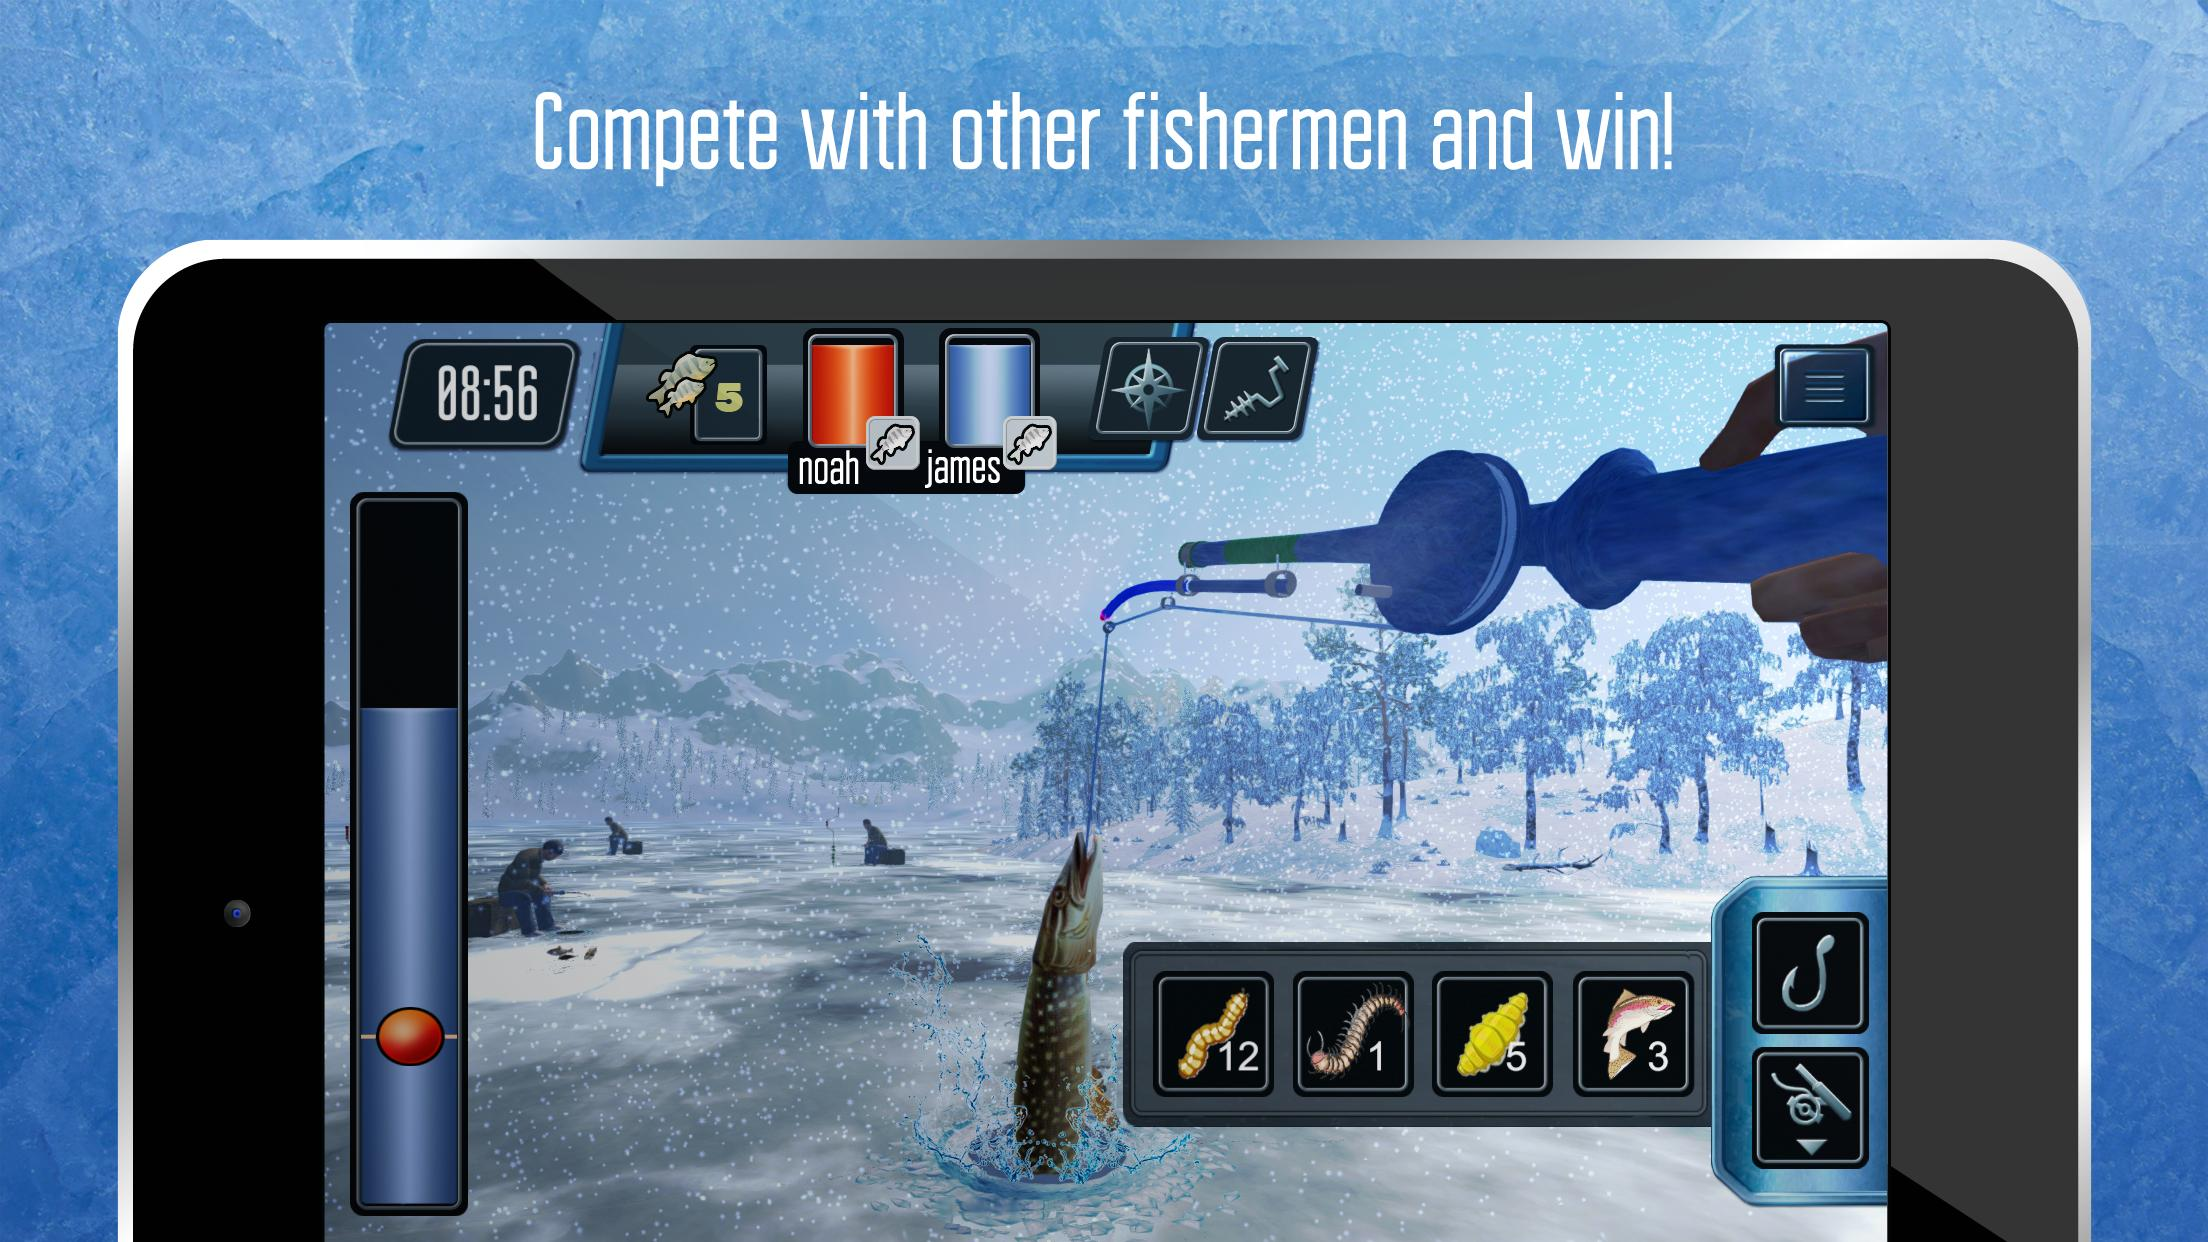 Ice Fishing  Free fishing game  Catch big fish! for Android - APK